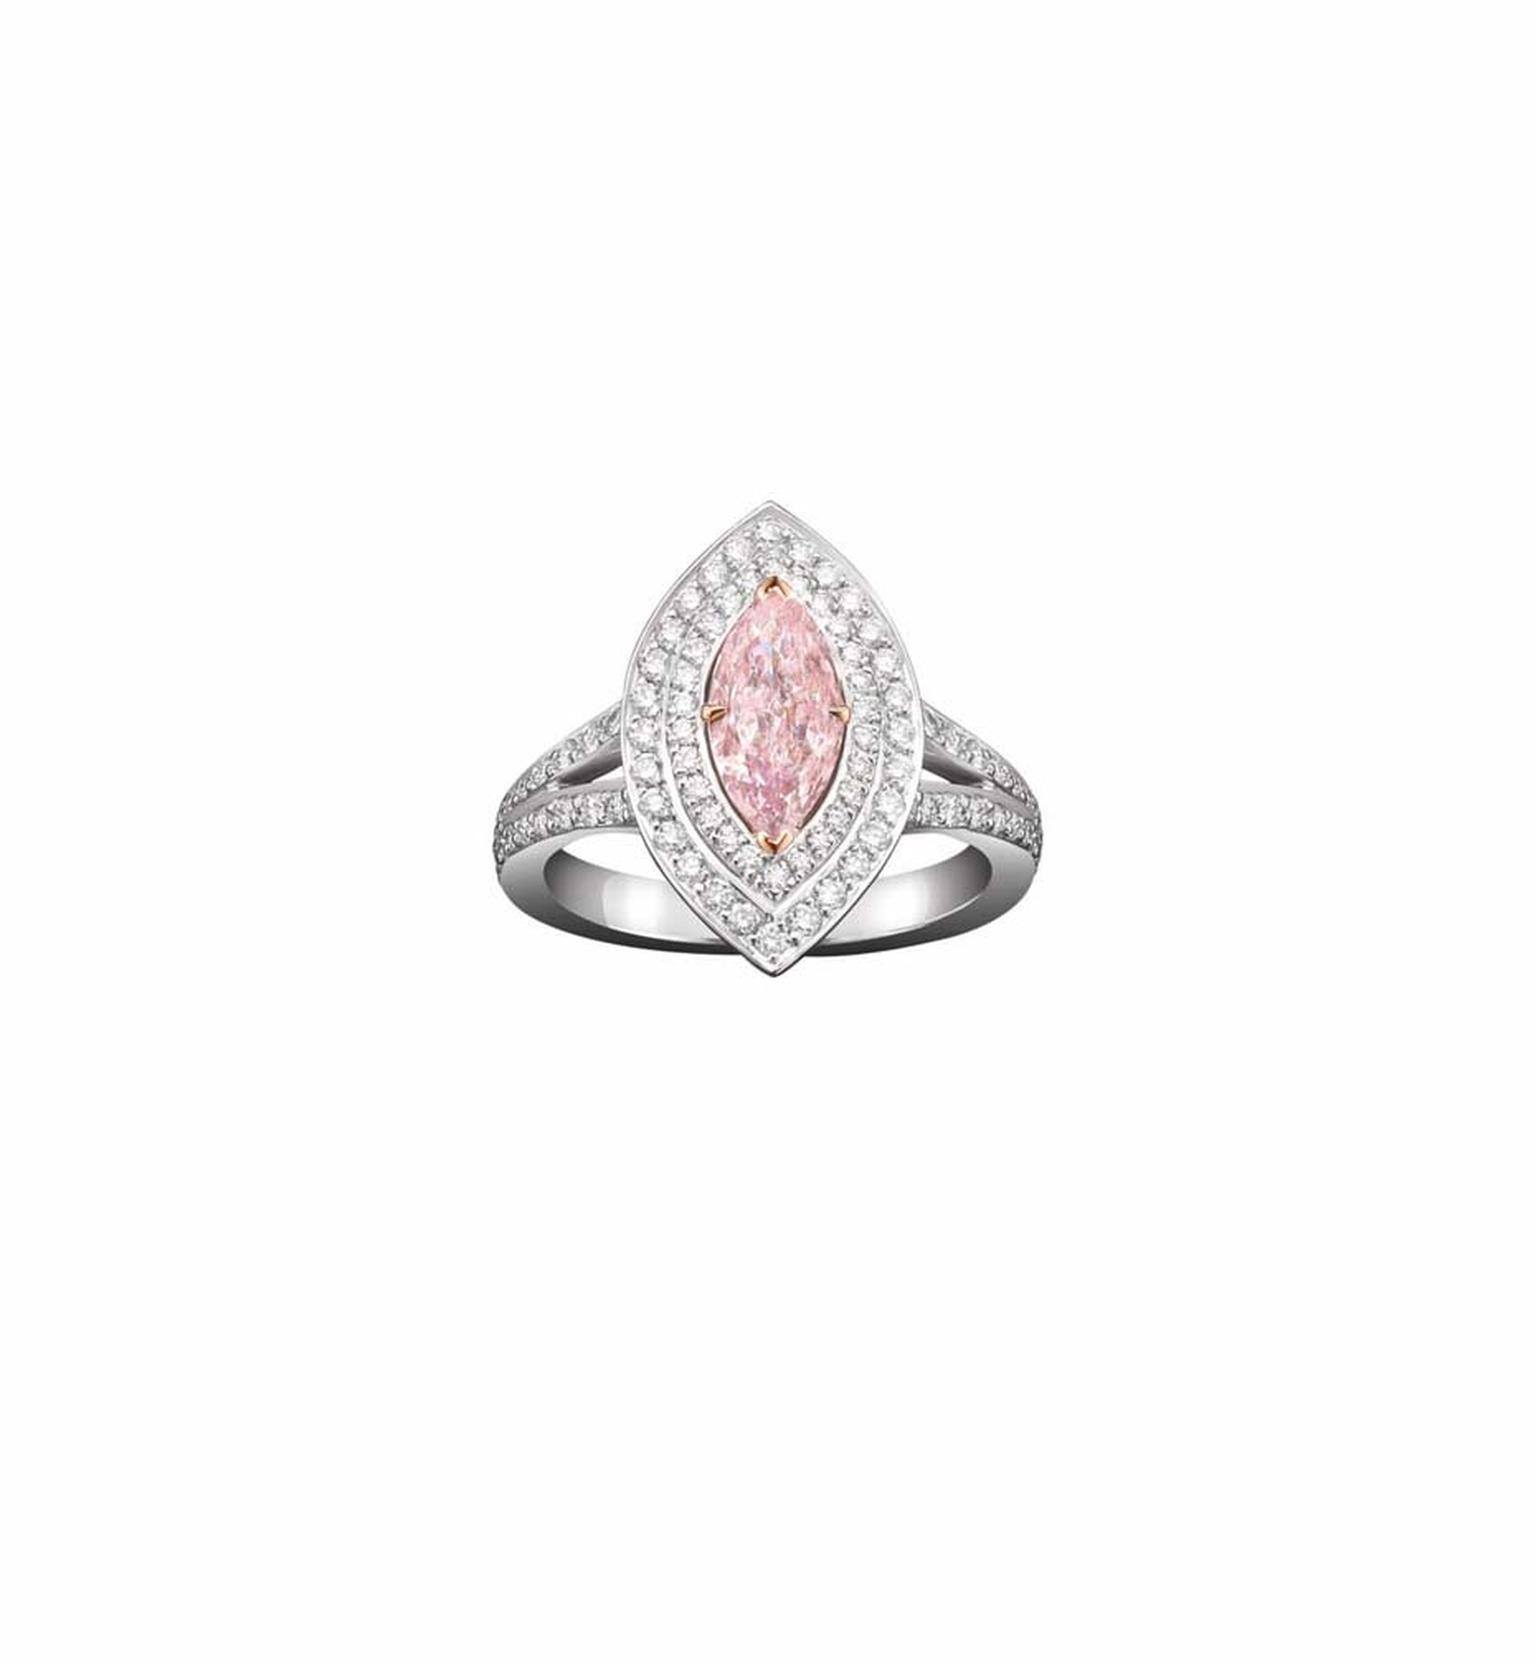 Boodles marquise-cut pink diamond engagement ring surrounded by a double pavé of white diamonds leading to a double pavé ban